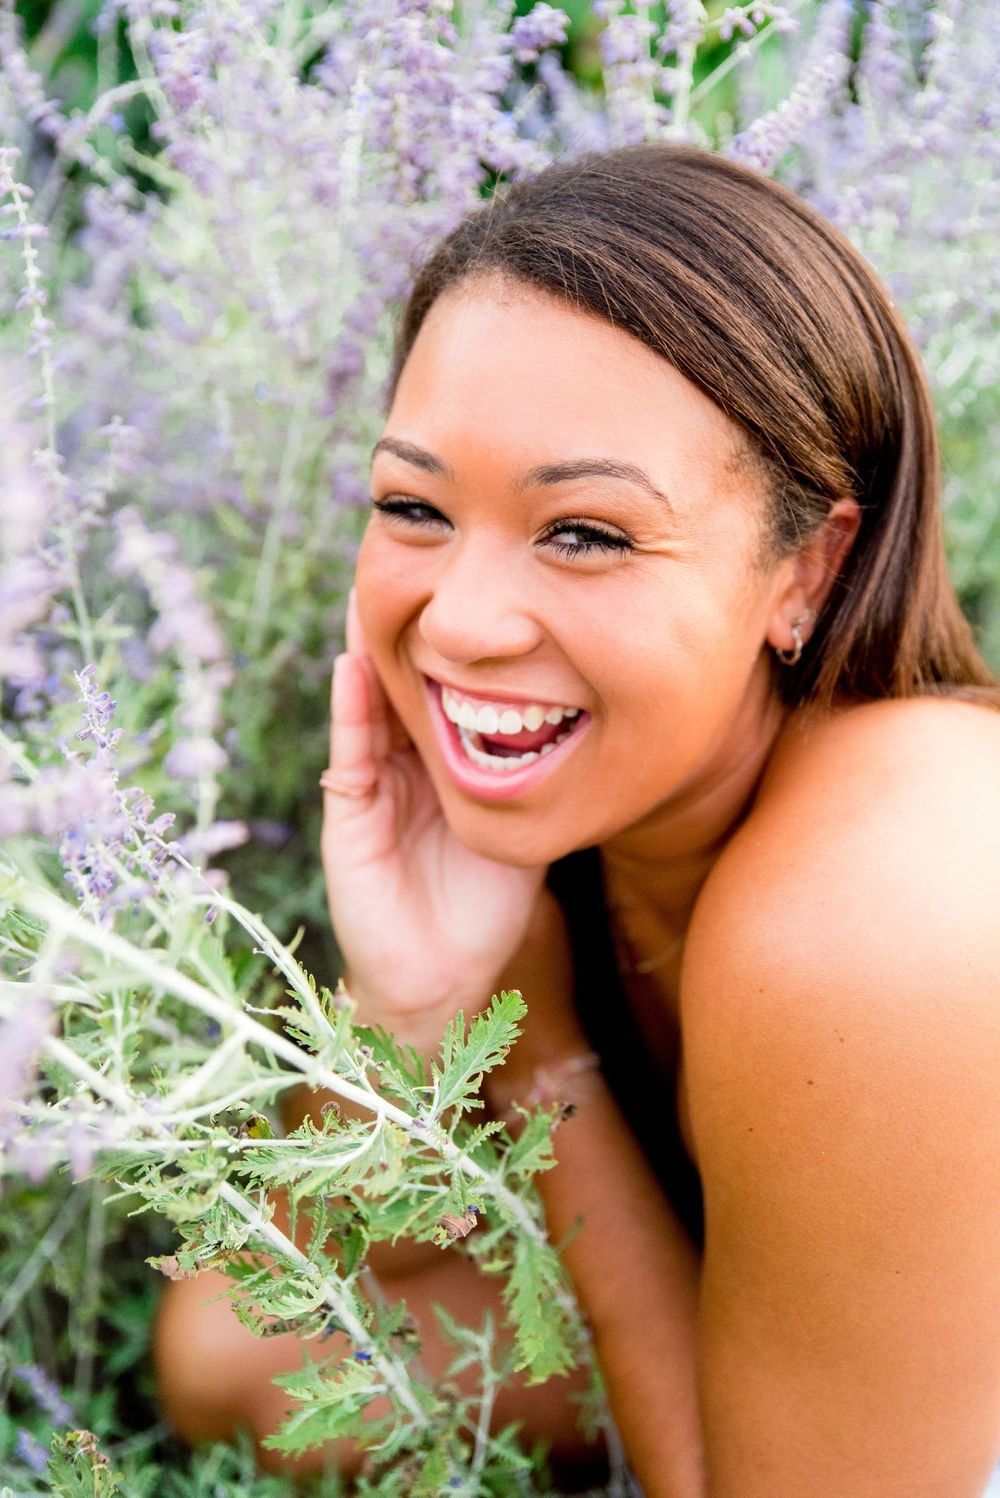 girl with shoulder length brown hair smiling and laughing in a field on lavender